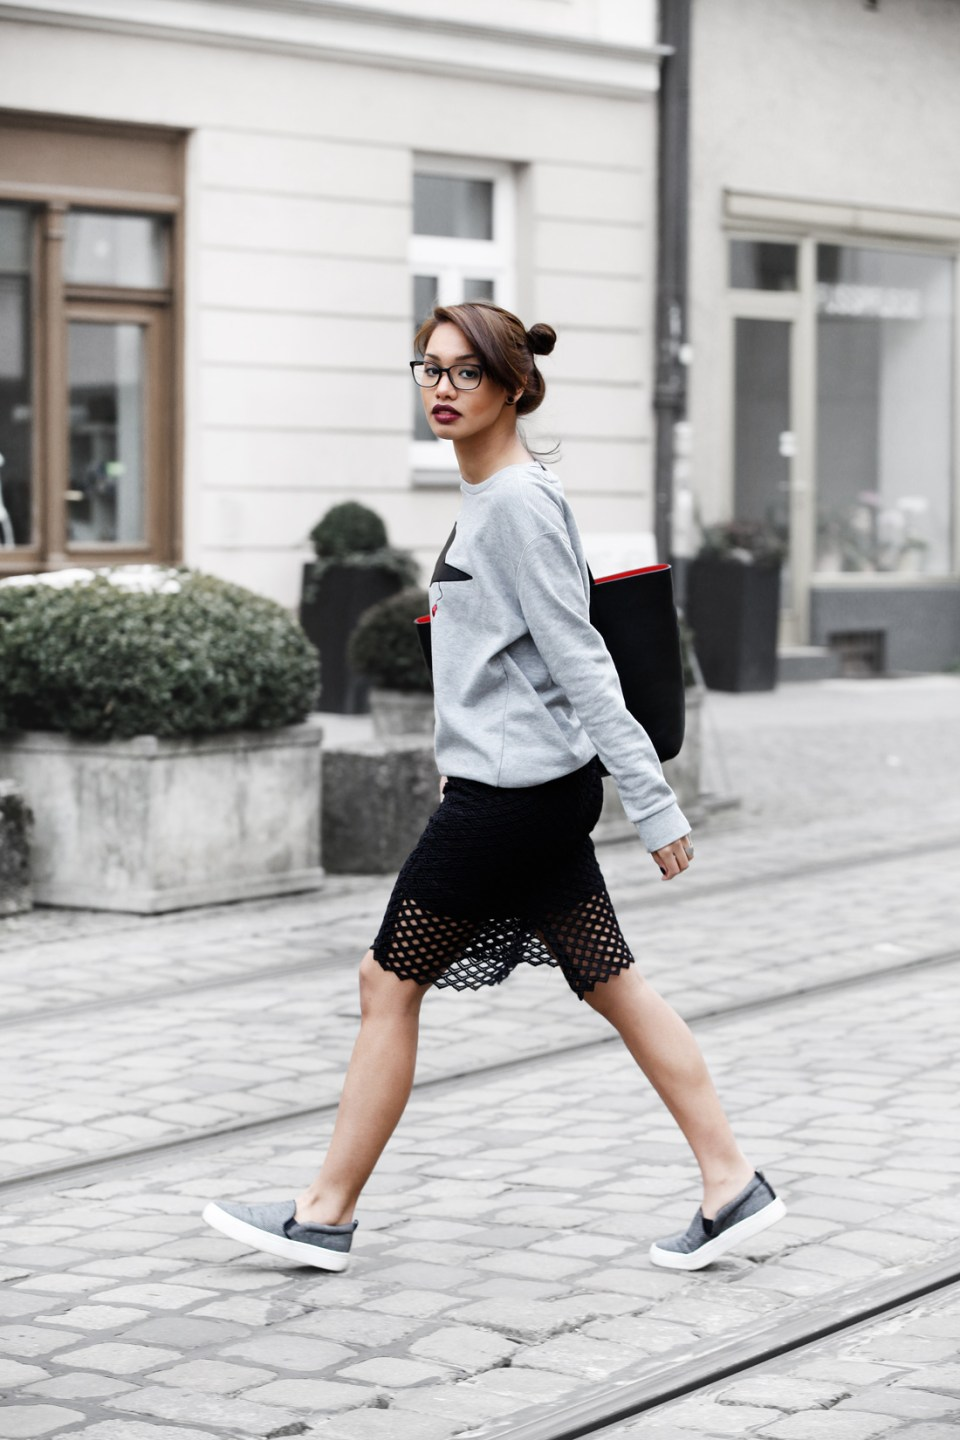 DIANABUENGER-MODEBLOG-FASHIONBLOG-STYLEBLOG-QUANTUMCOURAGE-SPONSORED-ZARA-OUTFITPOST-LOOK-SKIRT-CUTOUT-STREETSTYLE-BLOGGER-MUNICH-MUENCHEN-FASHIONBLOGGER-3